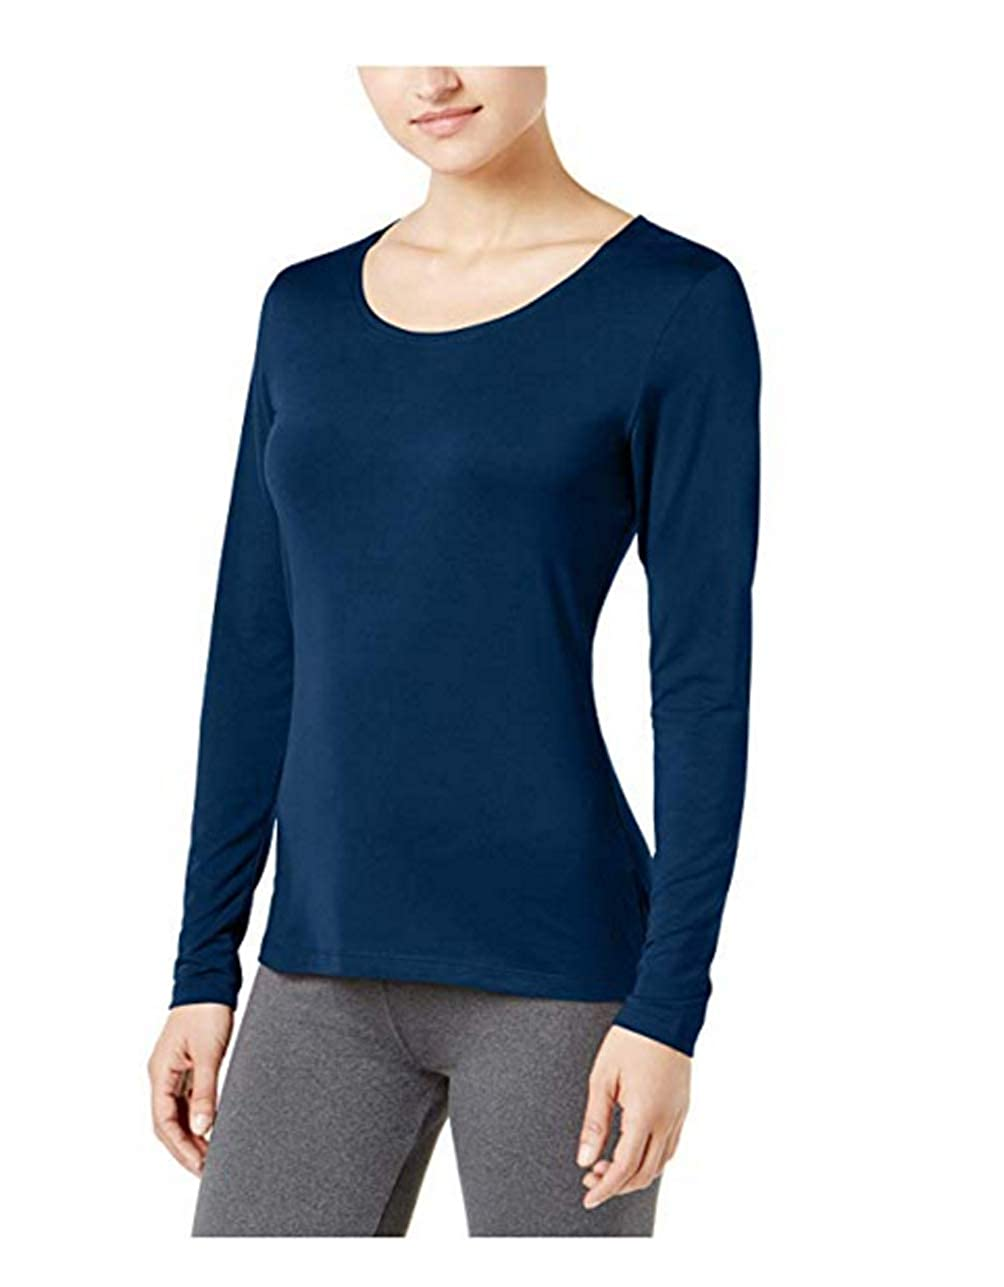 Stormy Night Large 32 Degrees Womens Cozy Heat Long-Sleeve Top